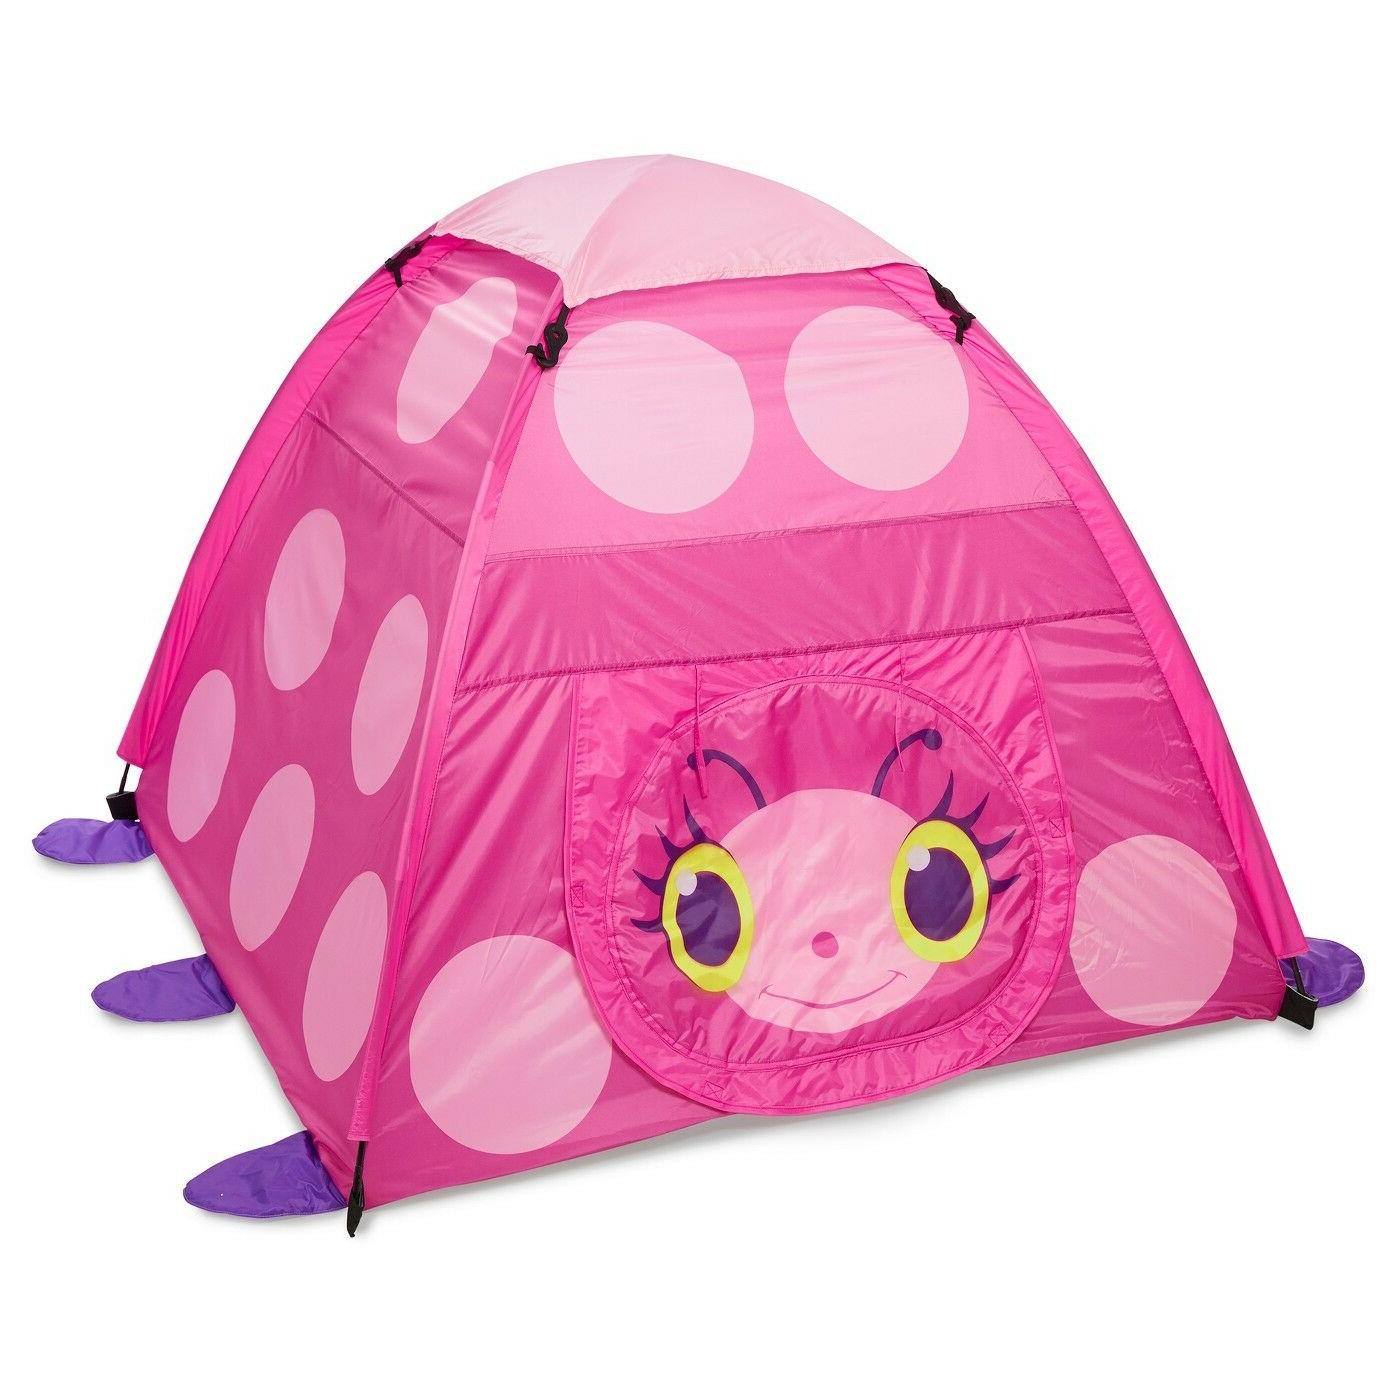 Patch Trixie Camping Tent